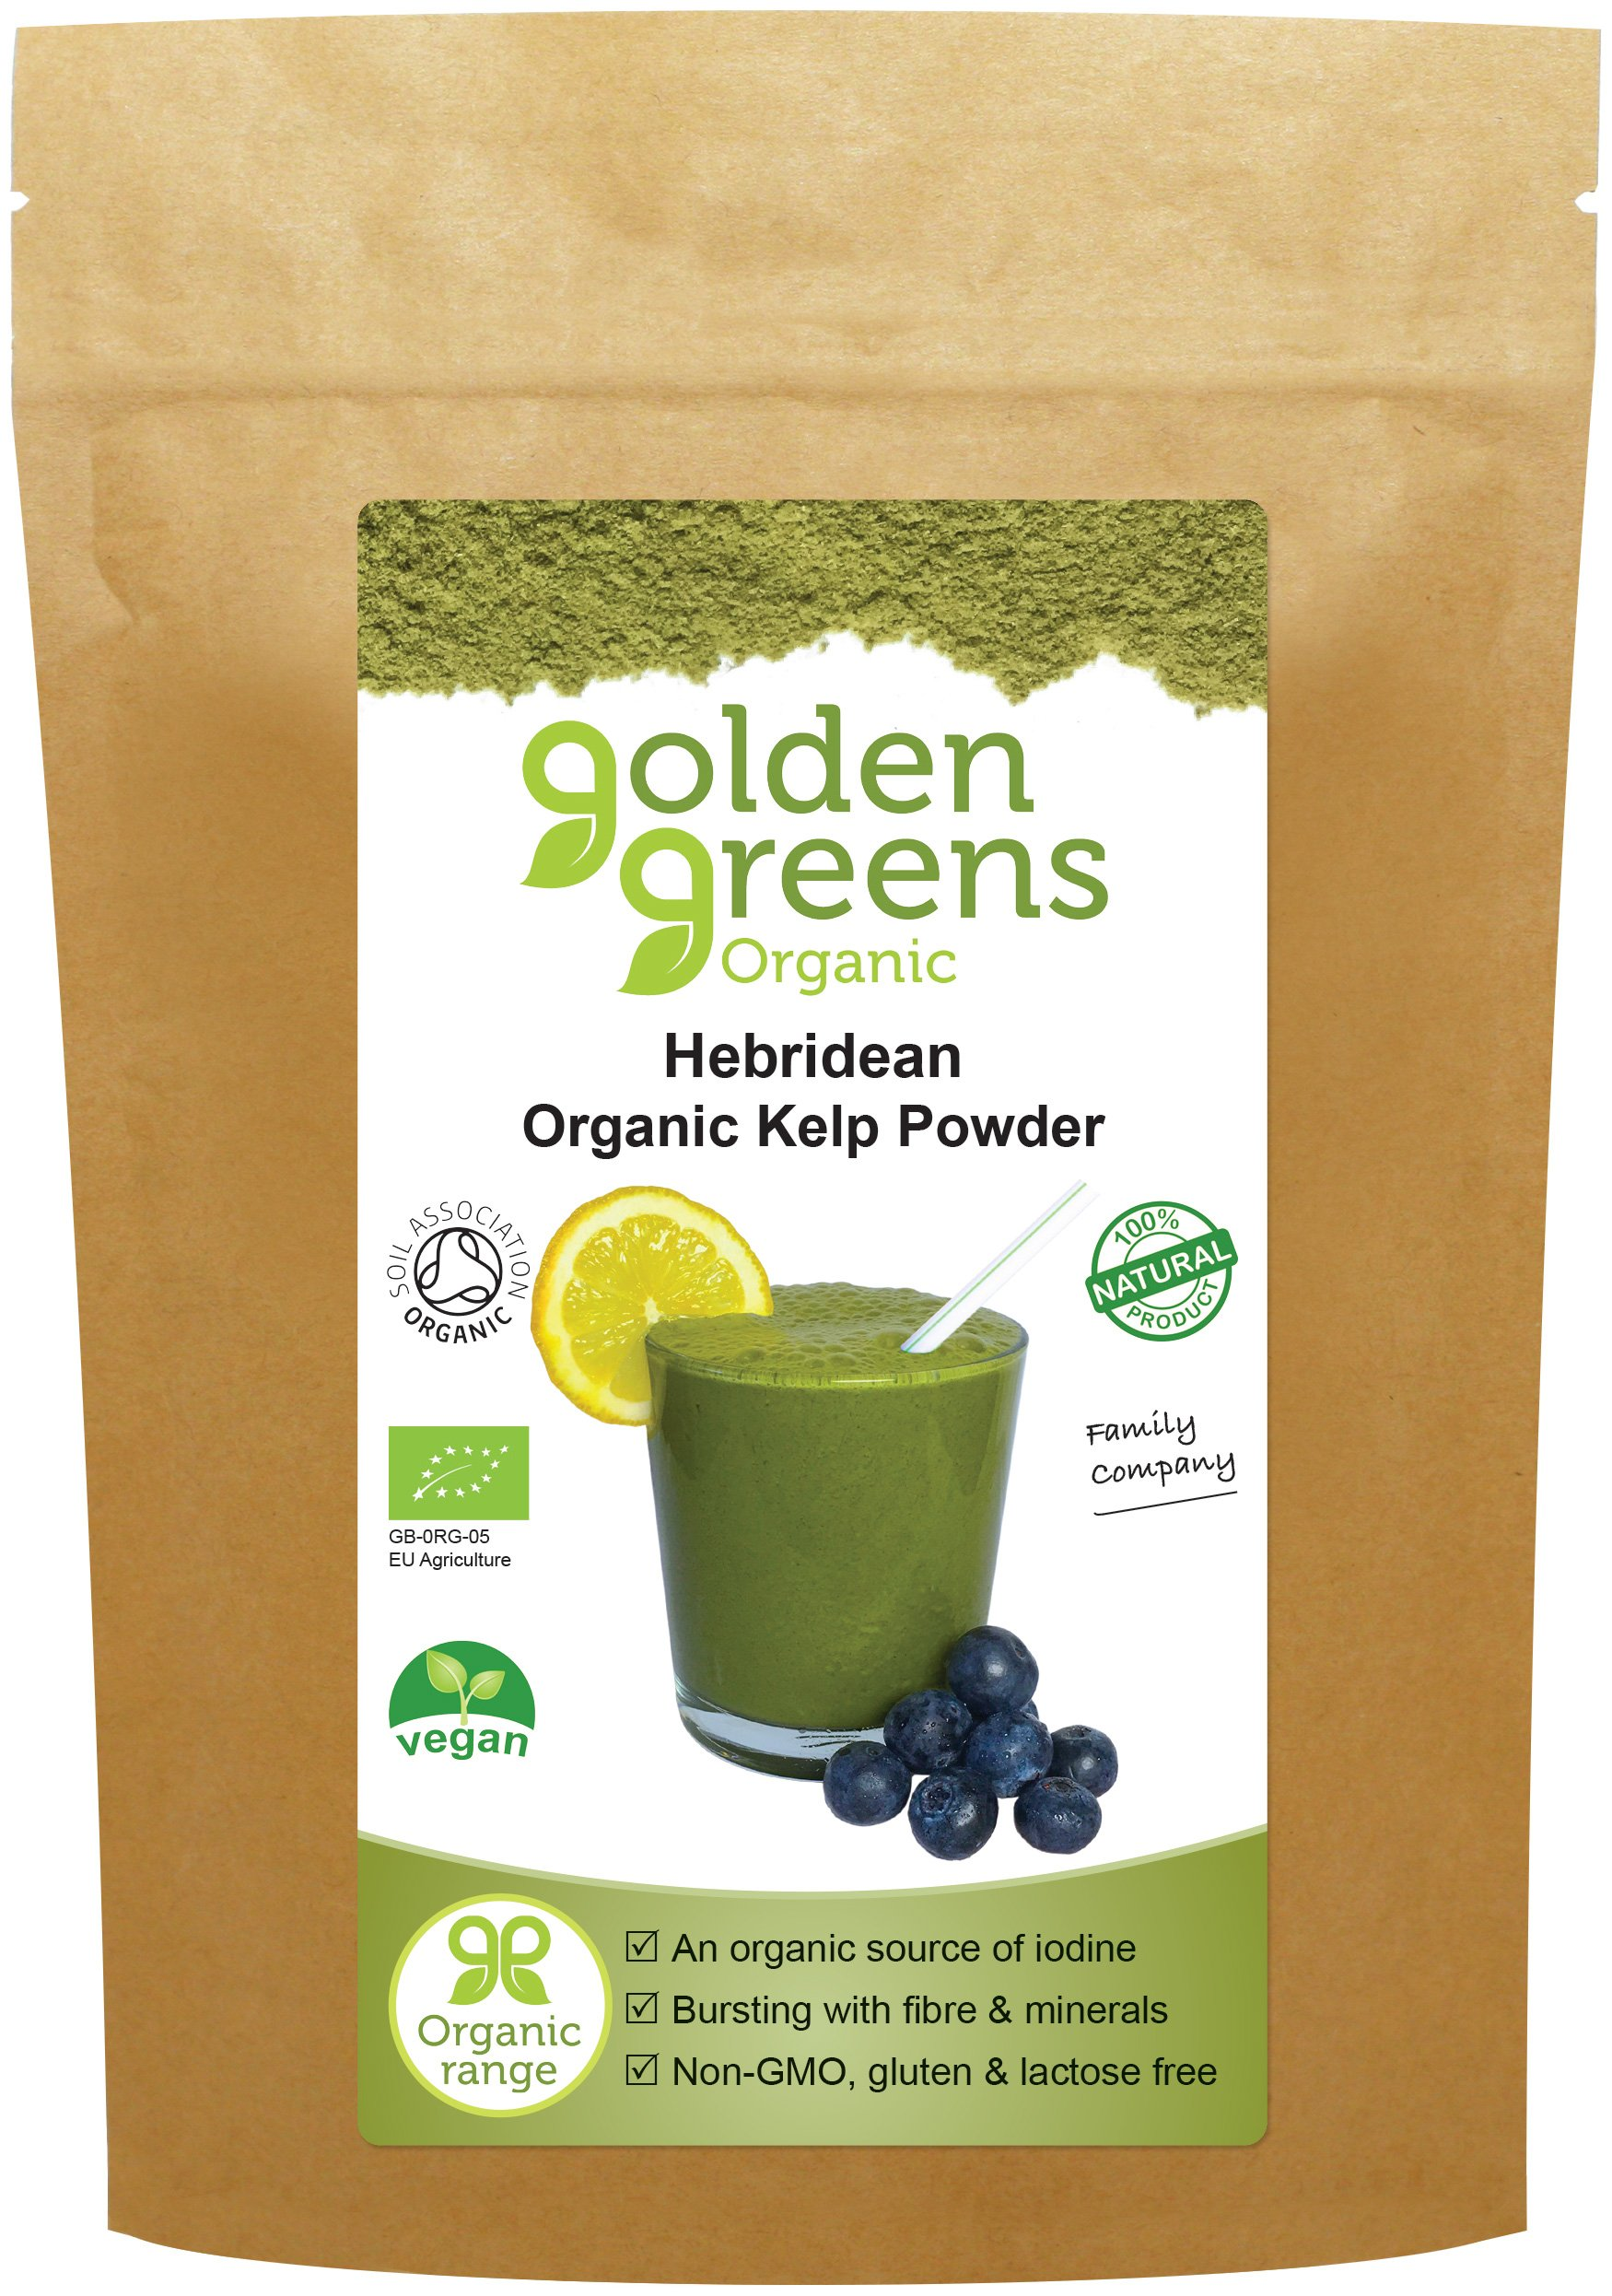 Golden Greens Organic Hebridean Kelp Powder 100g by Golden Greens